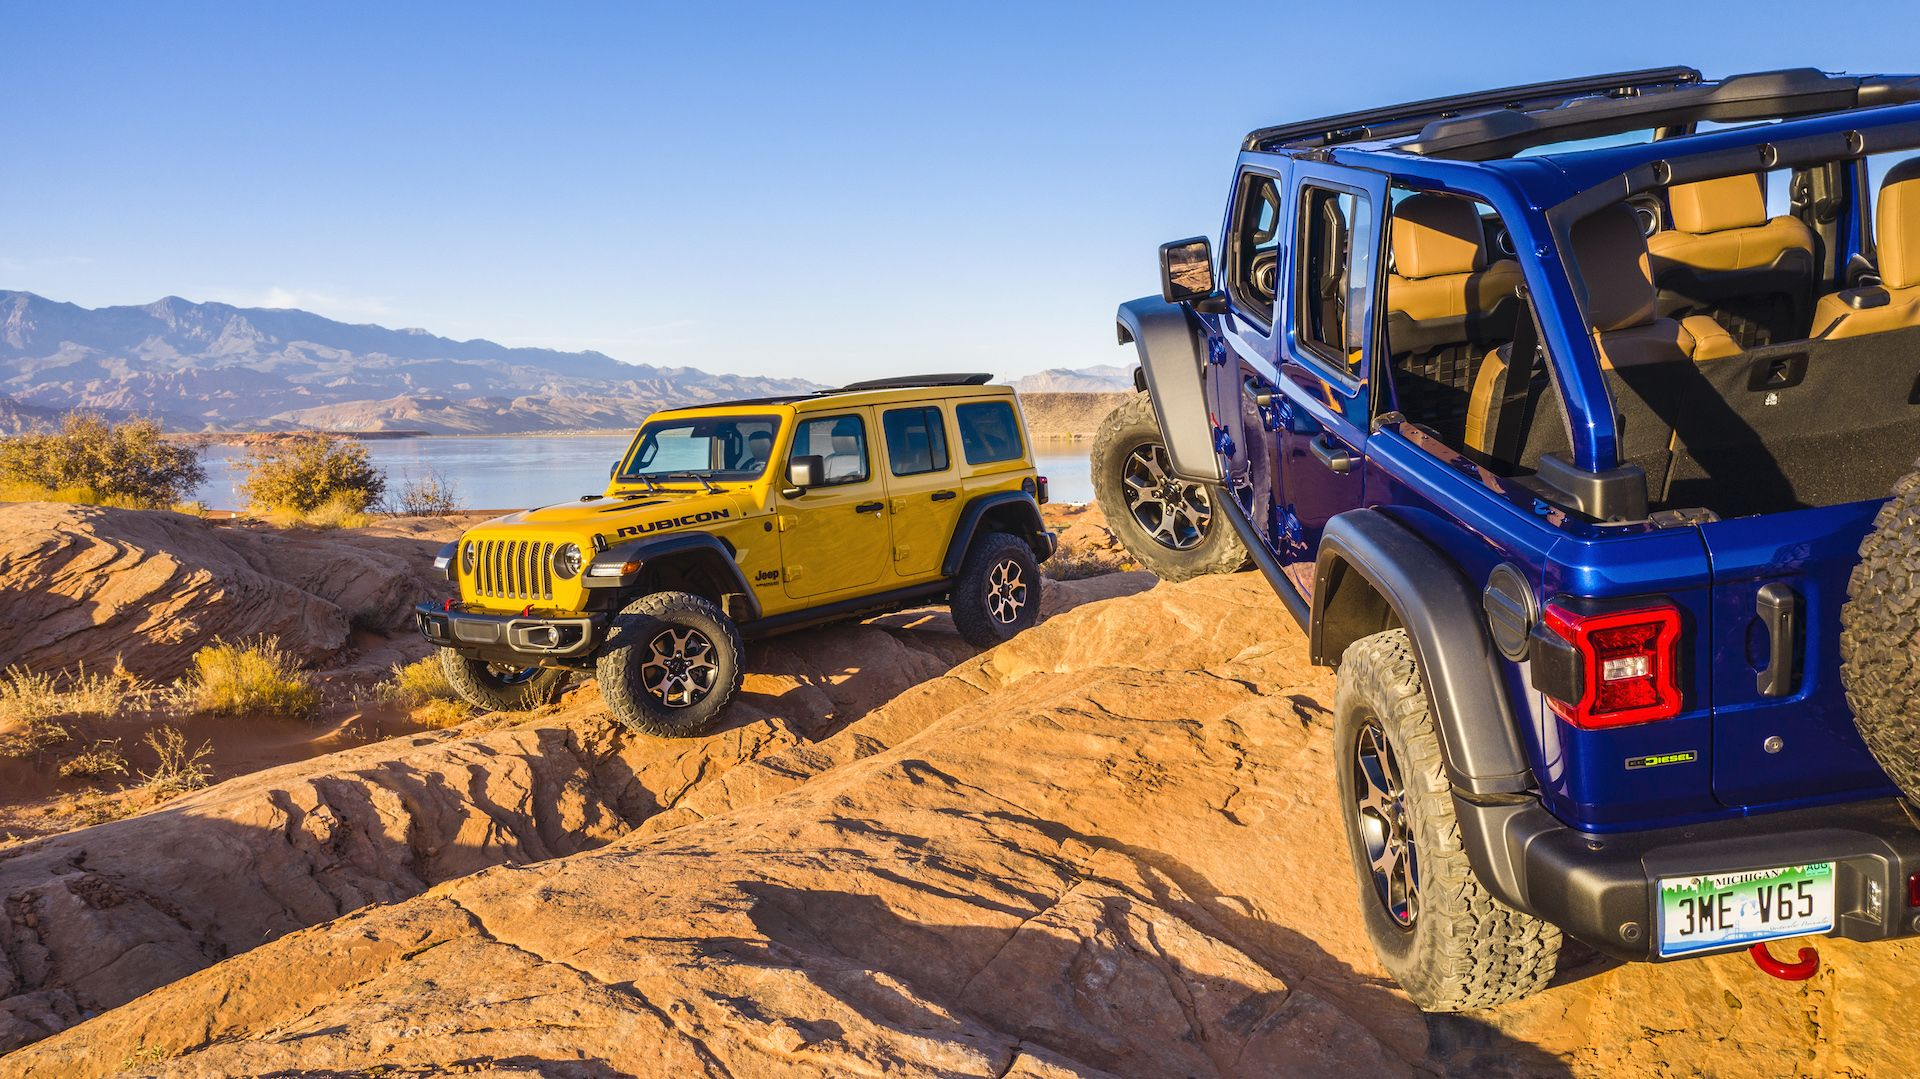 First Drive Review 2020 Jeep Wrangler Ecodiesel Ratchets Up The Power Range And Price Jeep Wrangler Jeep Wrangler